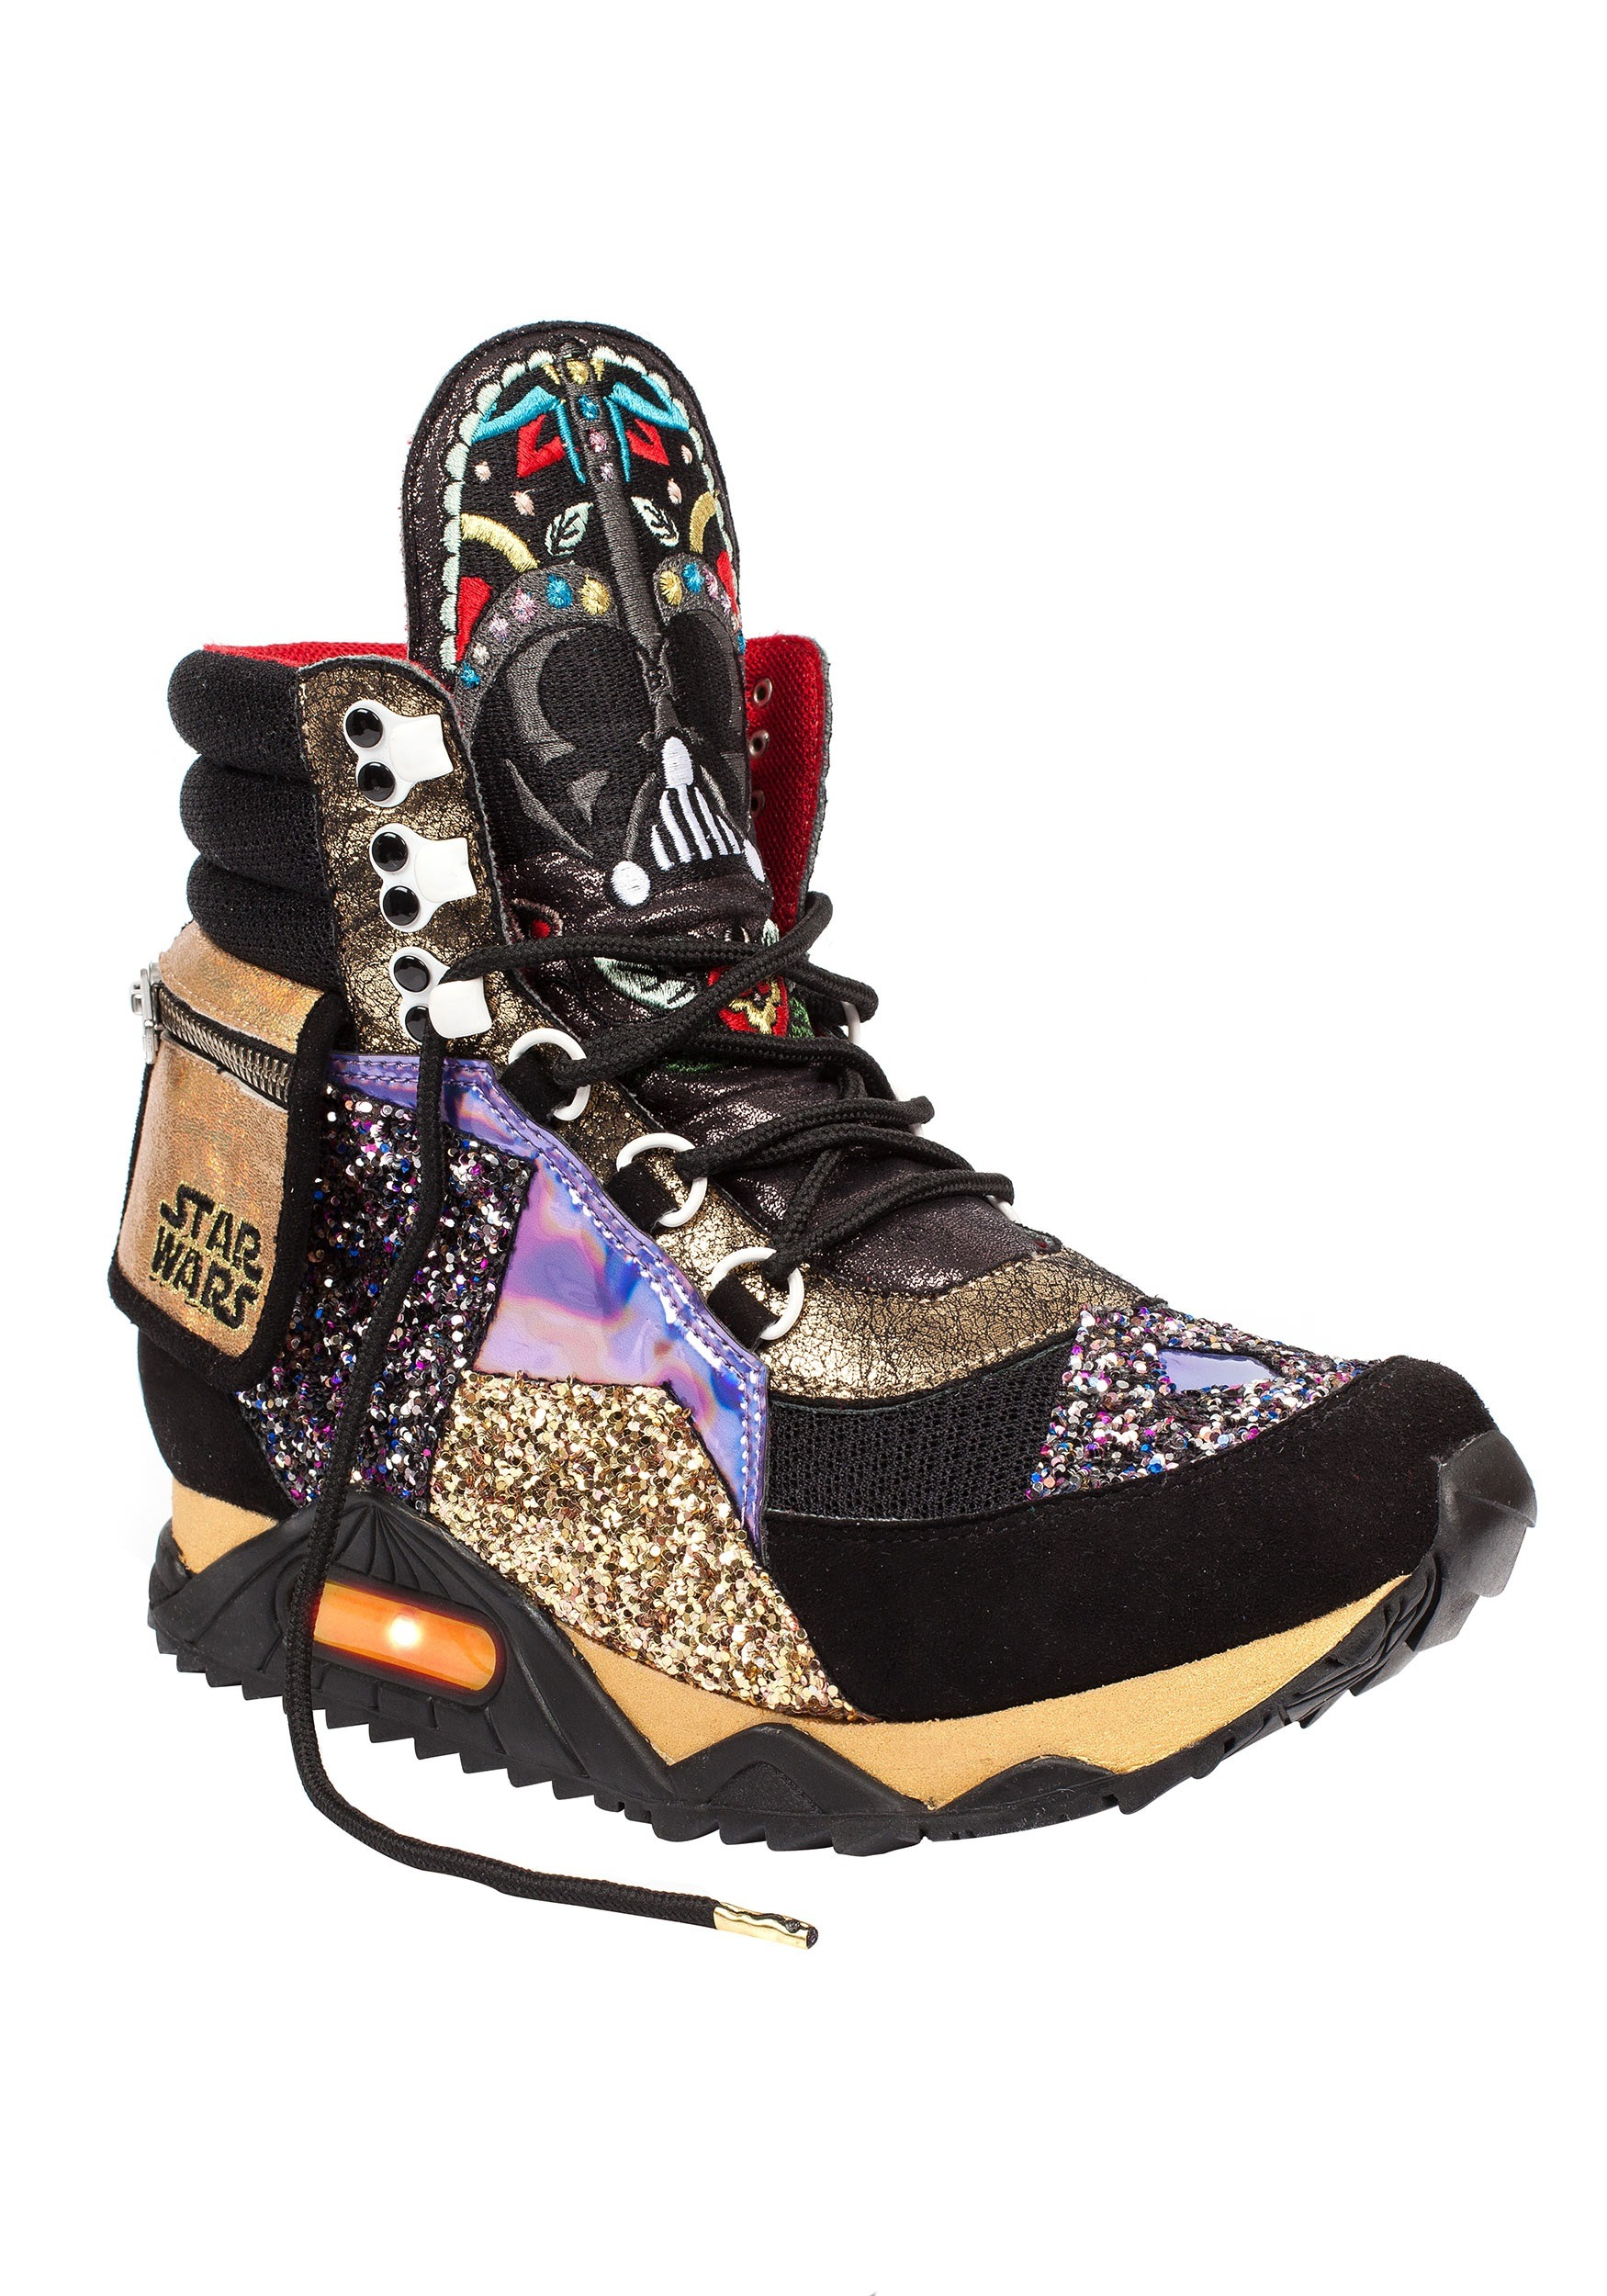 Star Wars High Top Shoes